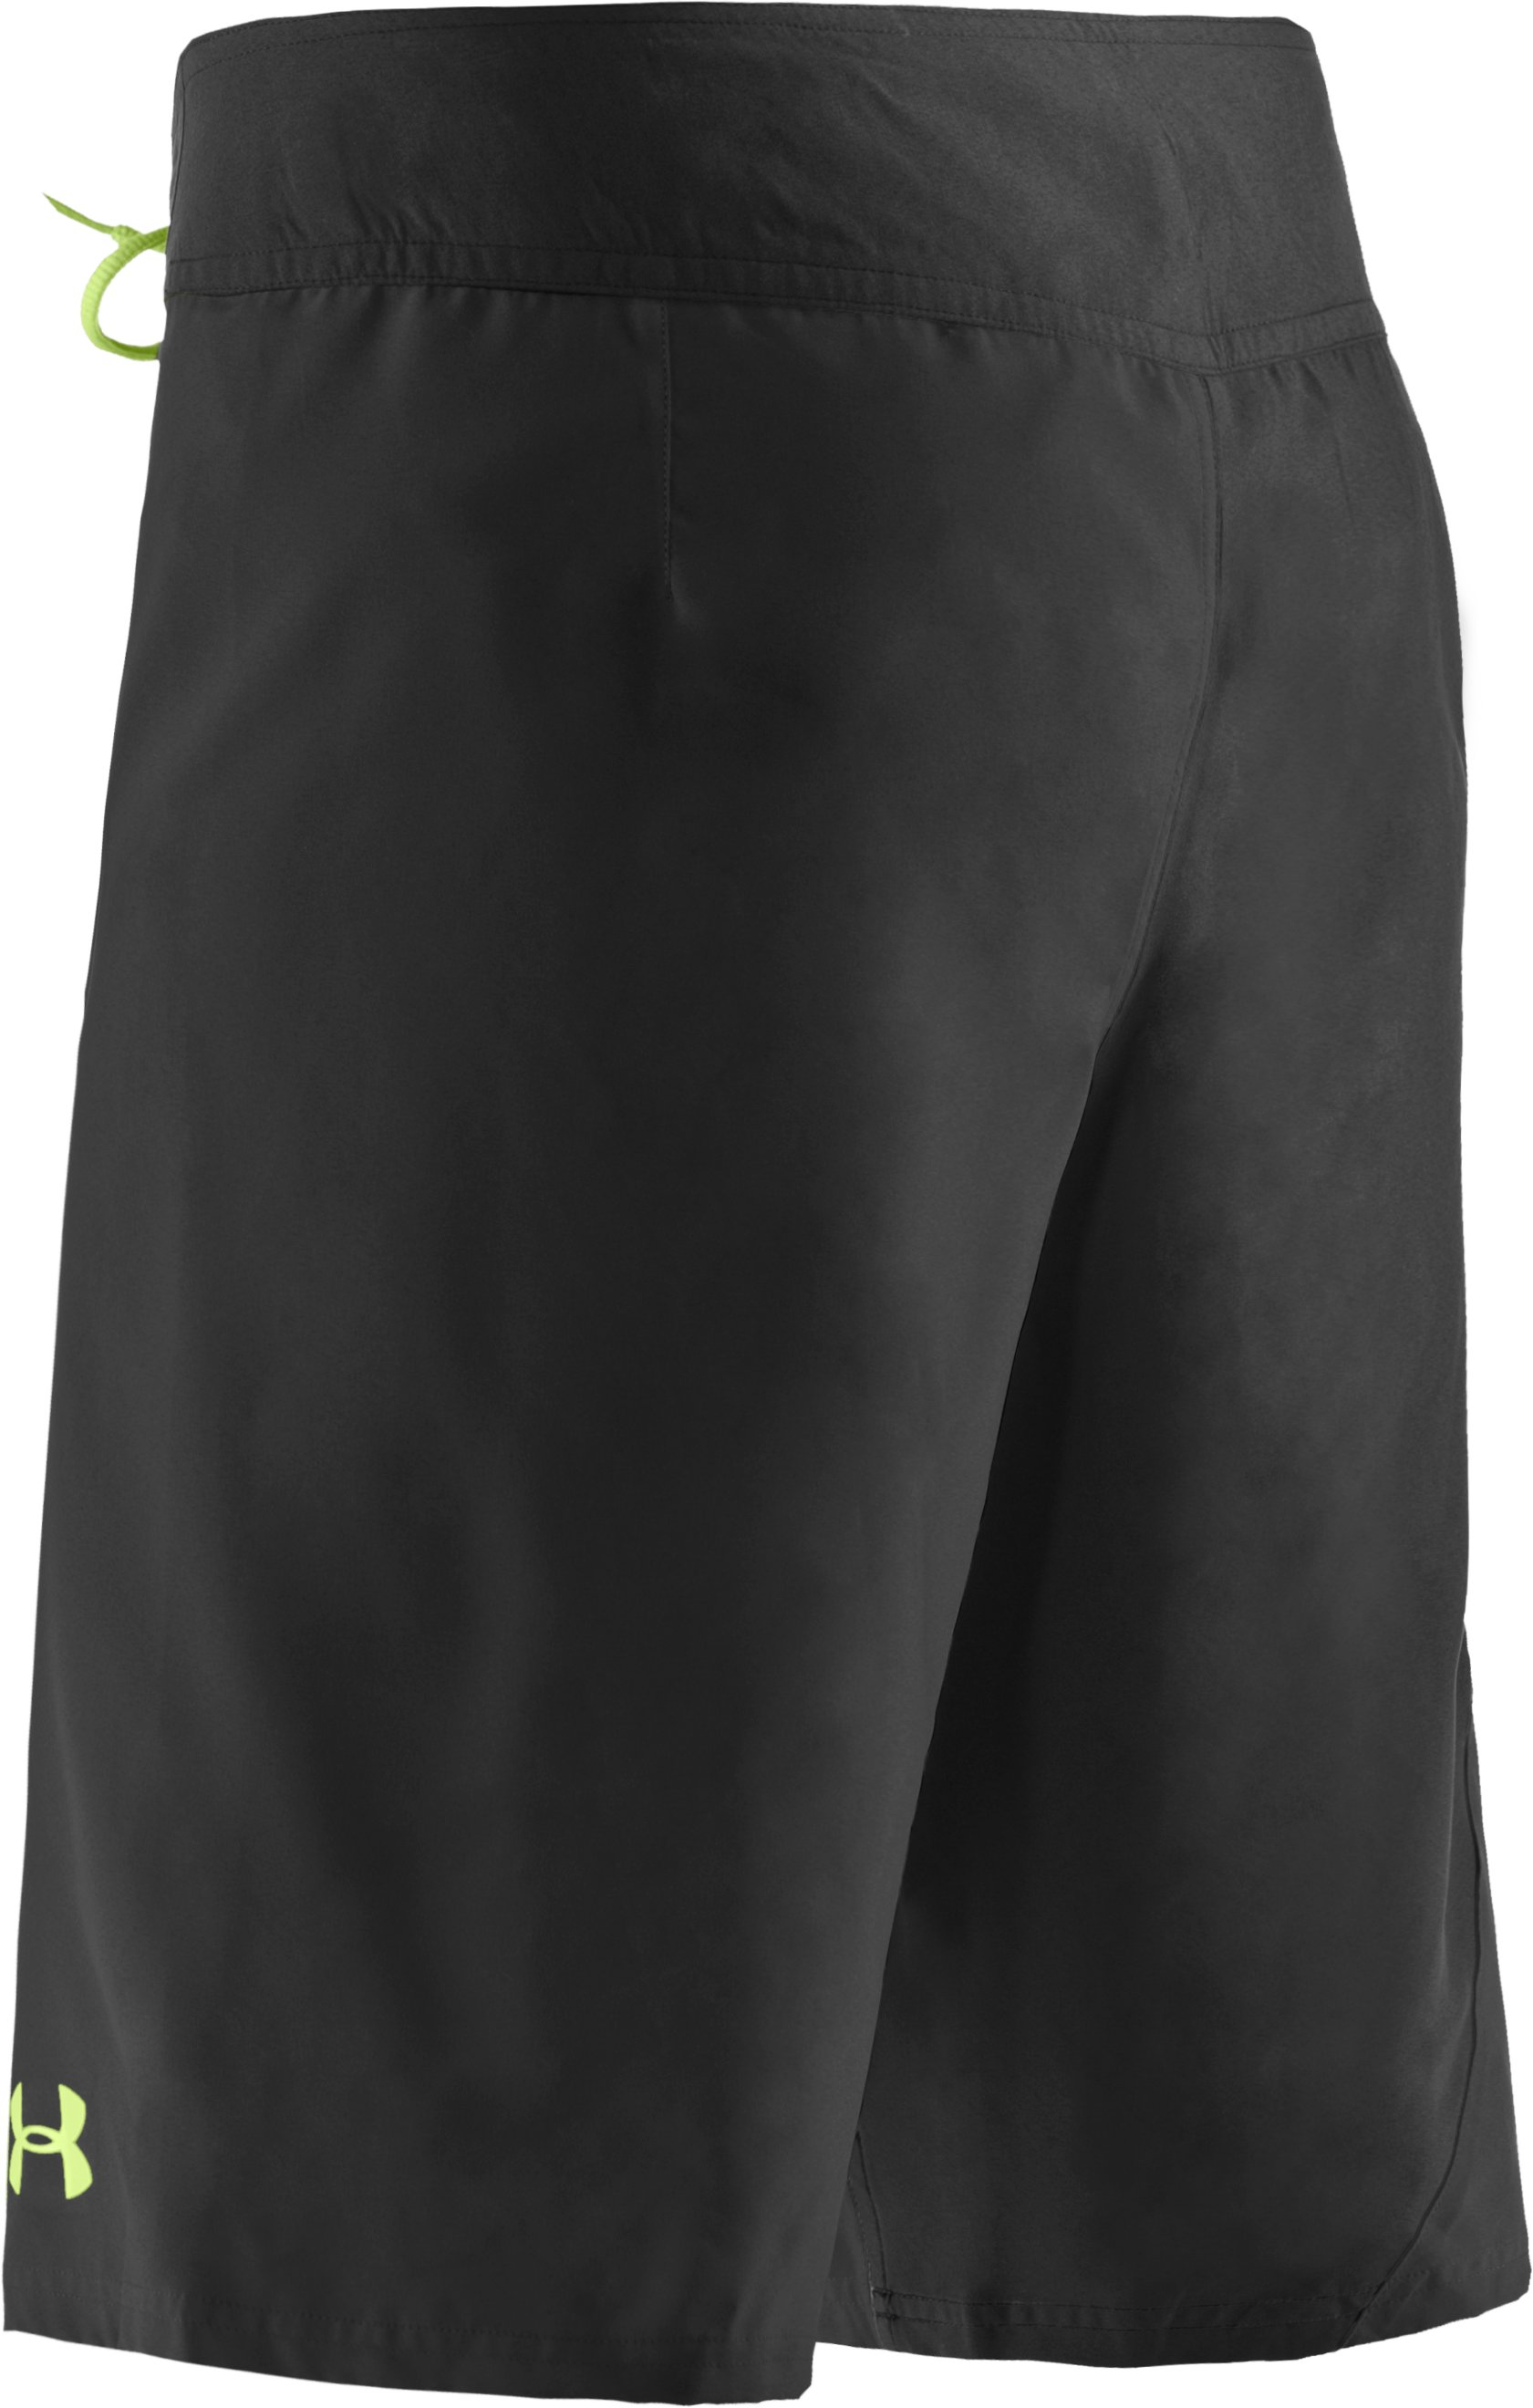 Men's UA Takahimi Board Shorts, Black